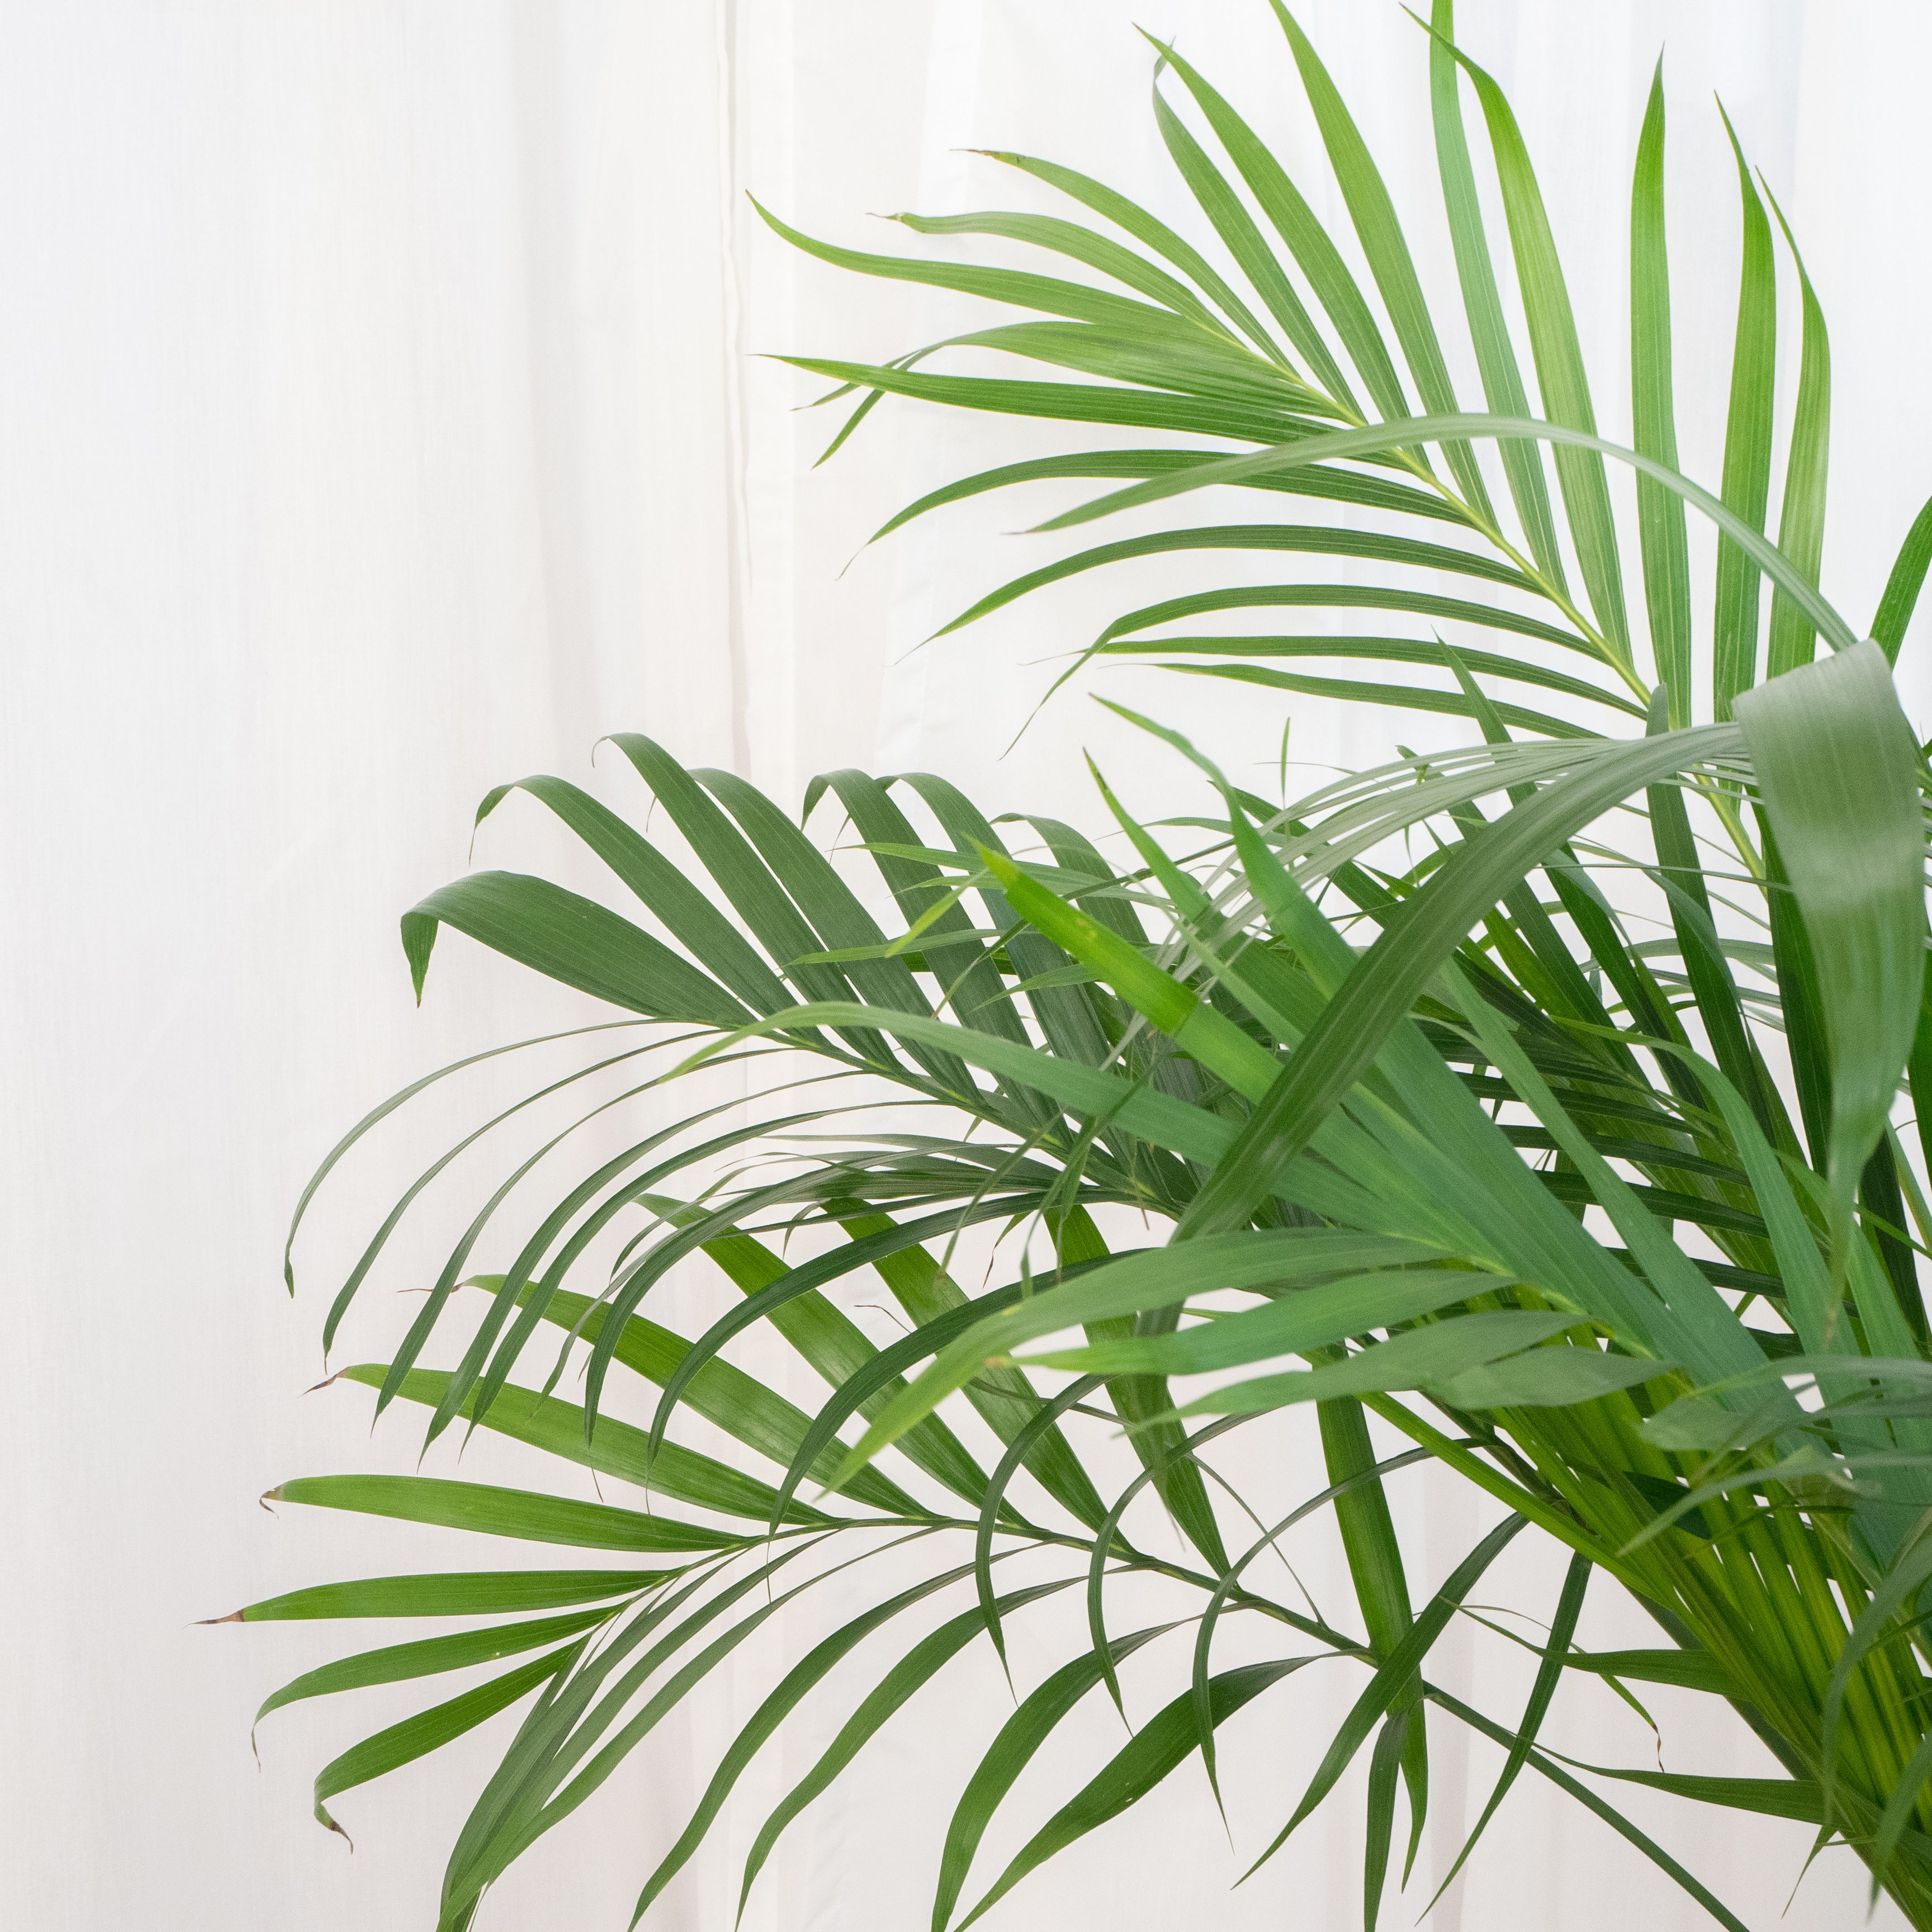 8 Types Of Palm Plants To Grow Indoors There are a multitude of types of tropical plants that blend nicely with palms or other trees and will add charm to almost any garden. 8 types of palm plants to grow indoors